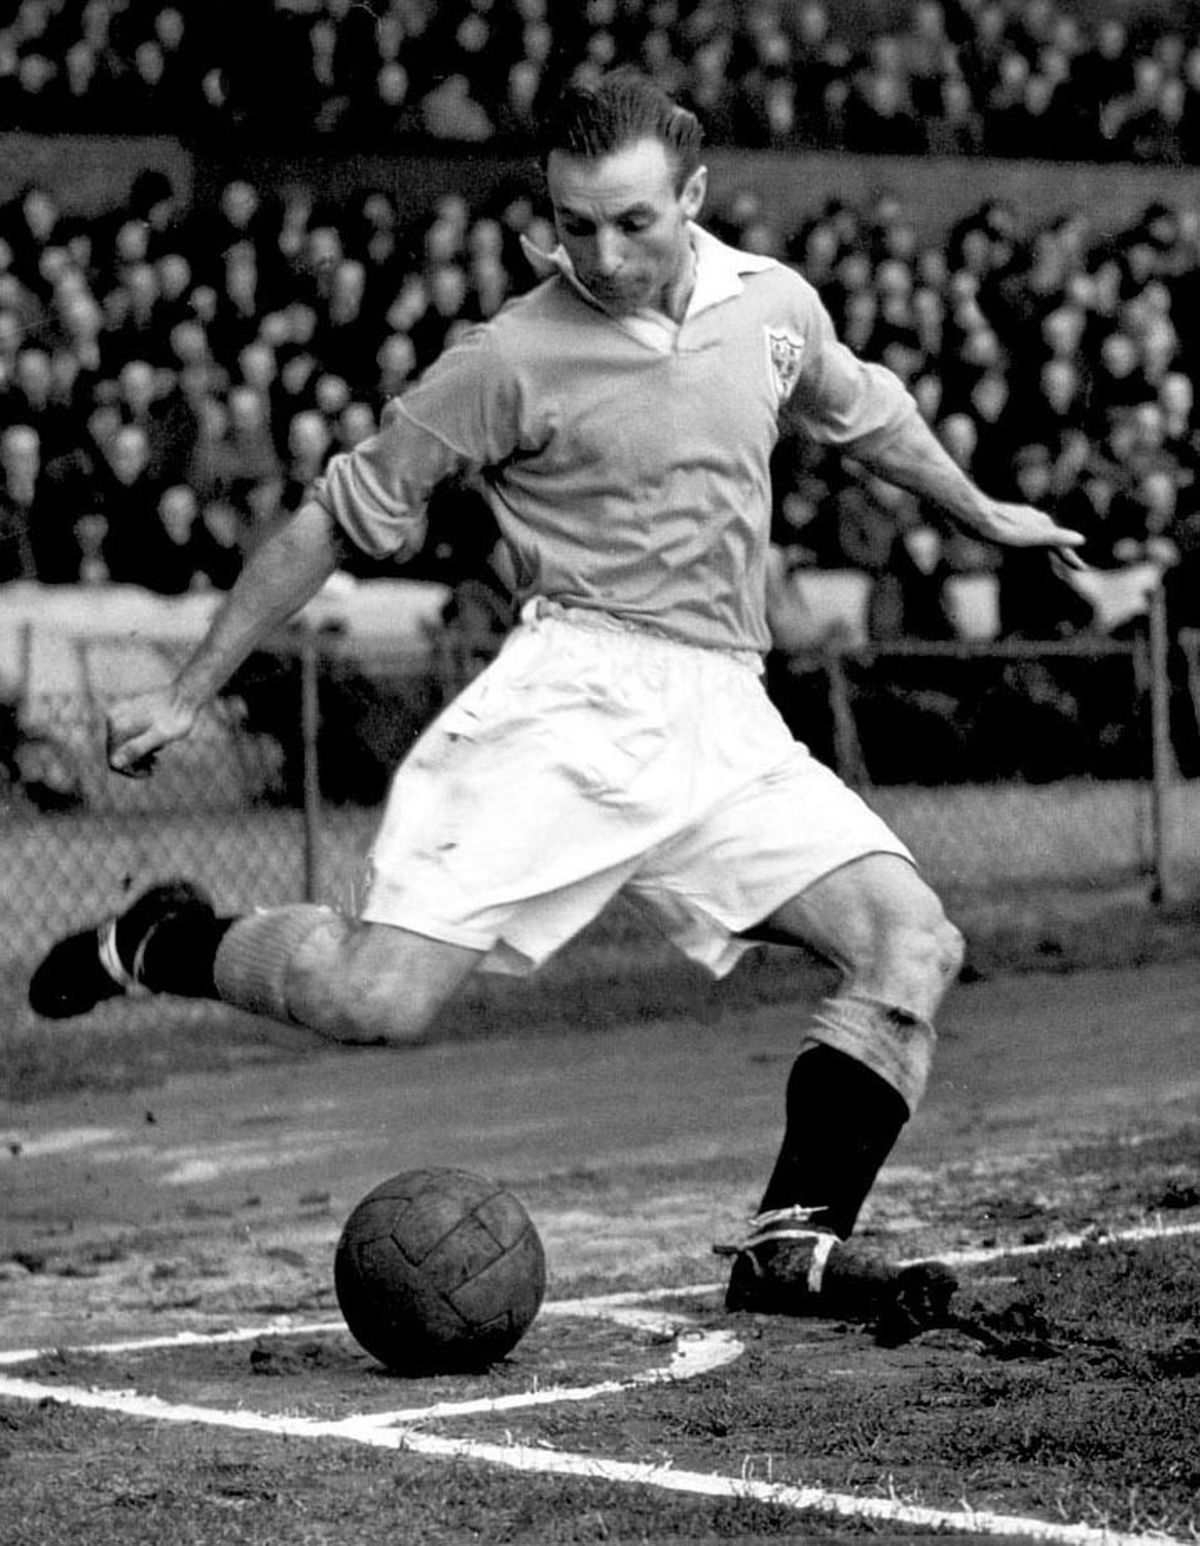 Stanley Matthews had a role in discovering the recipe that led to the Walkers crisps we know and love today